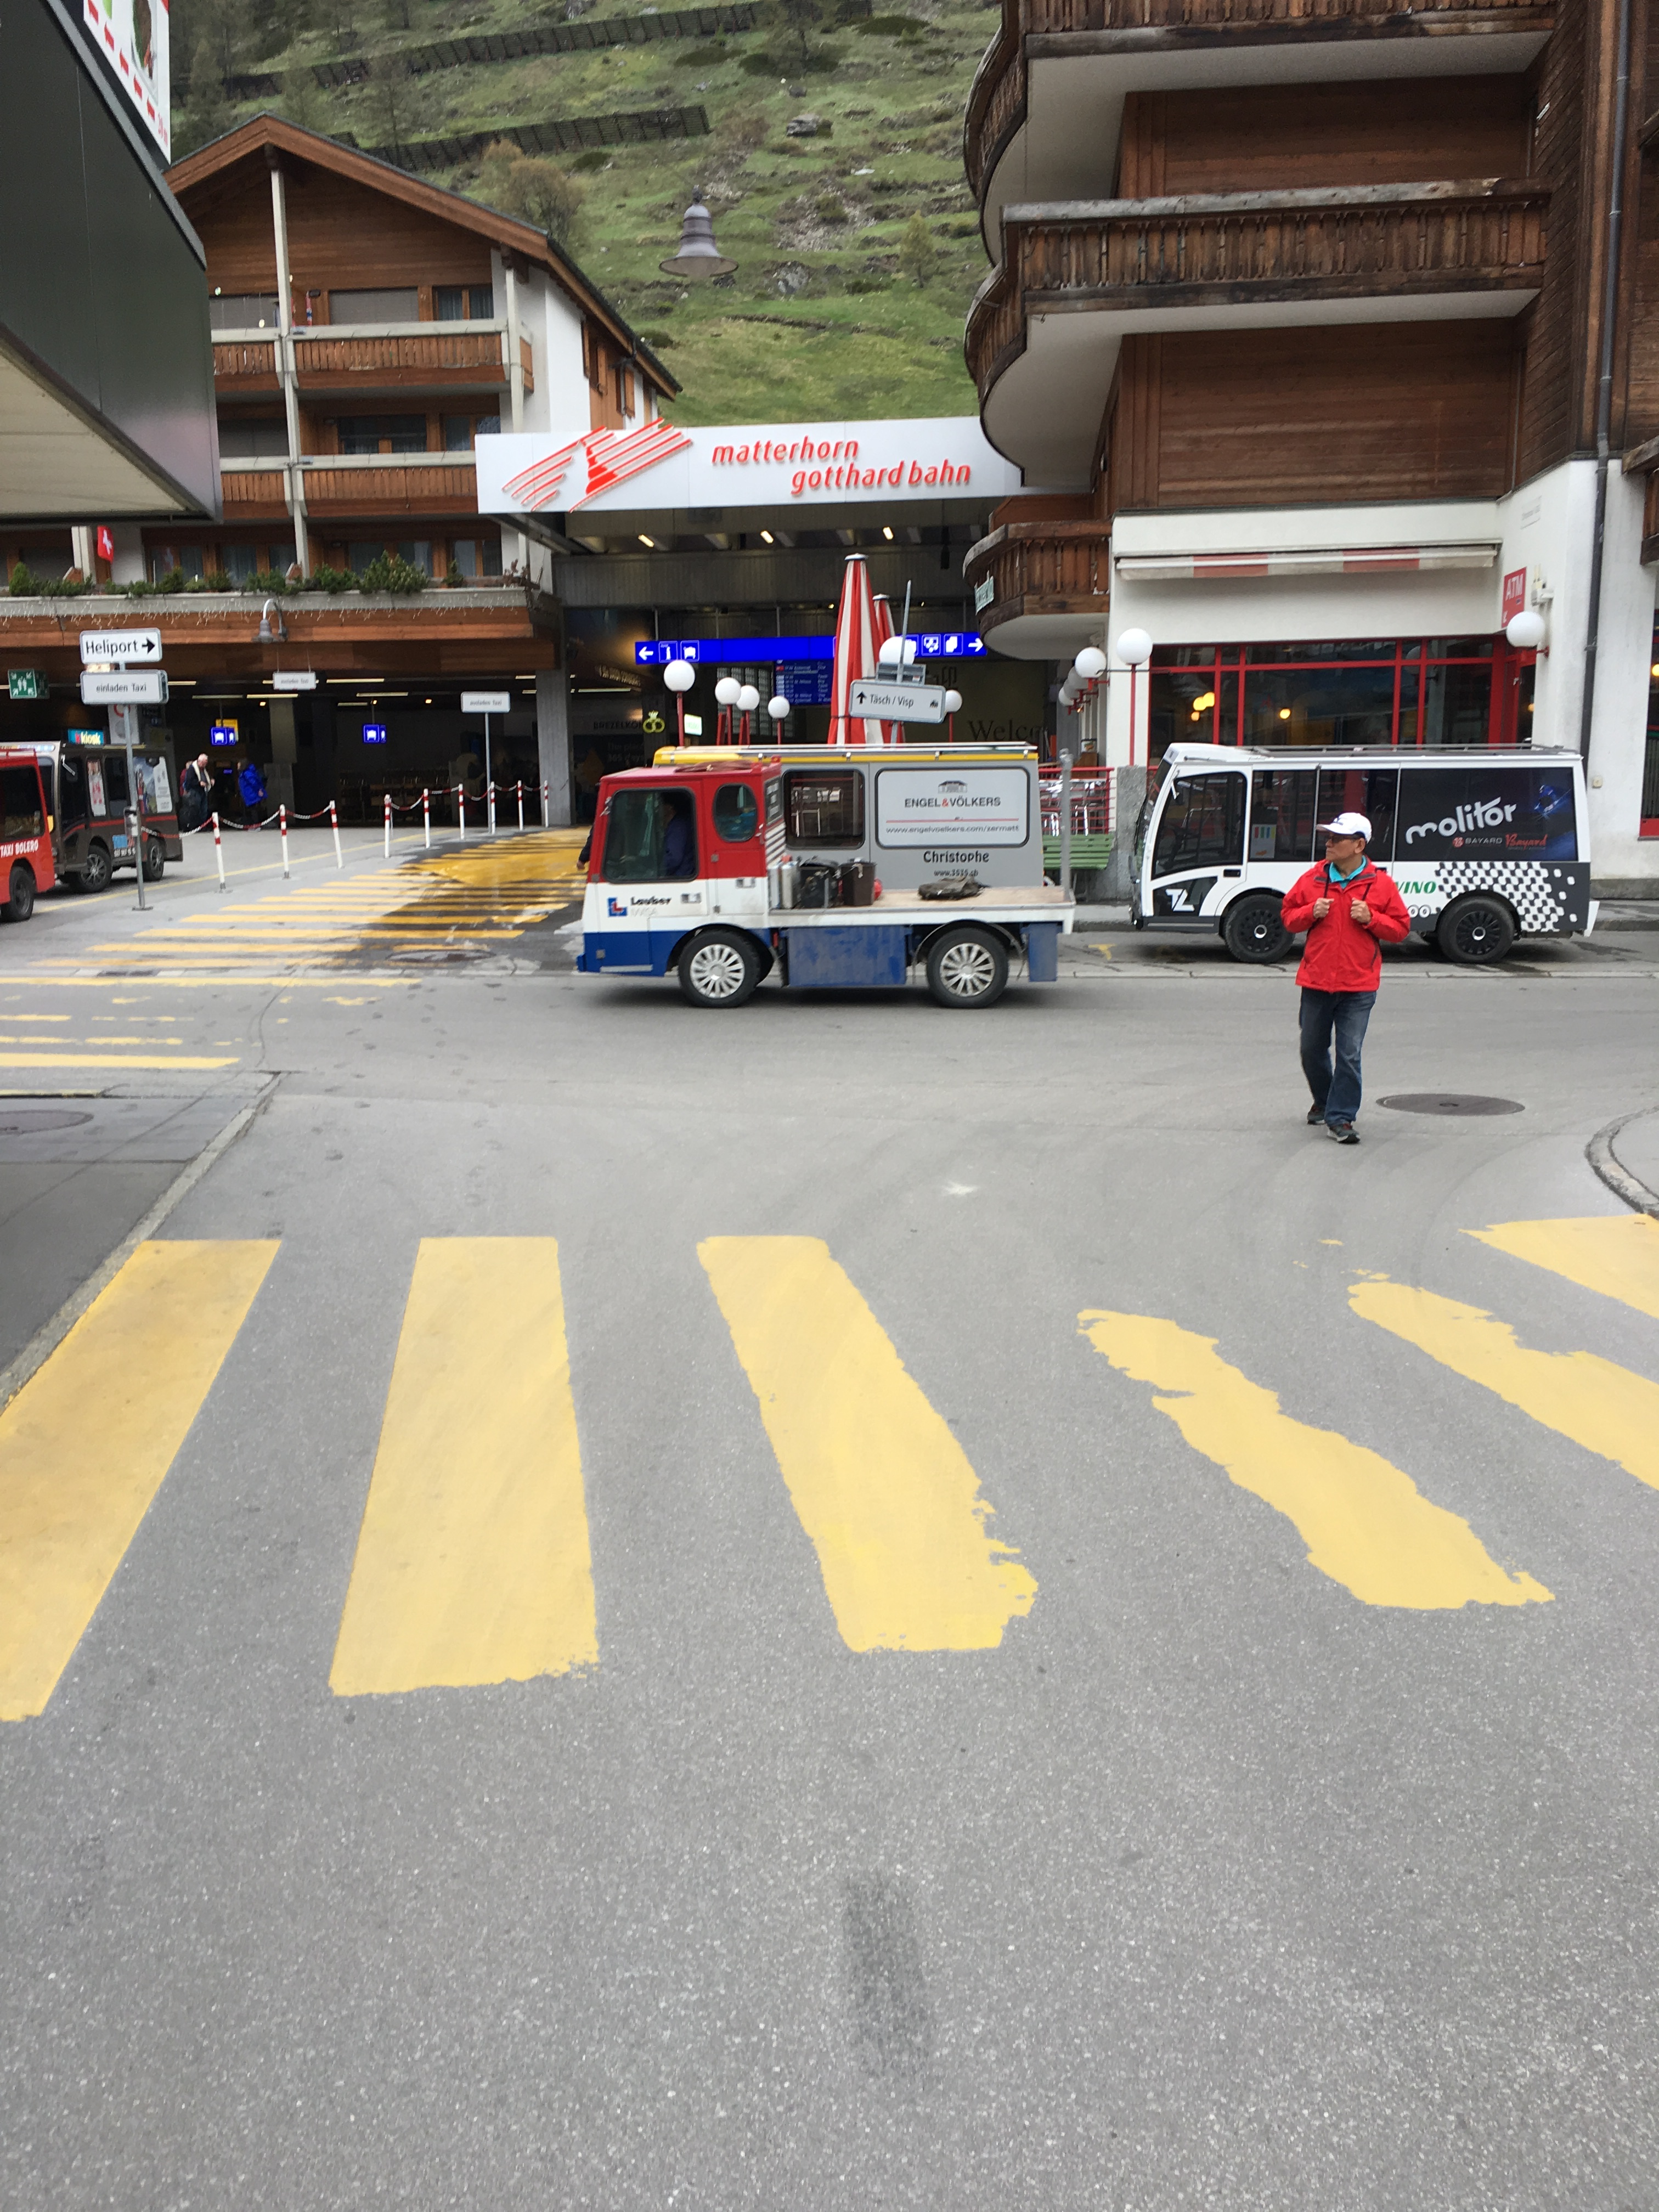 Entrance to the train station in Zermatt, Switzerland. Brownell, May 2019.